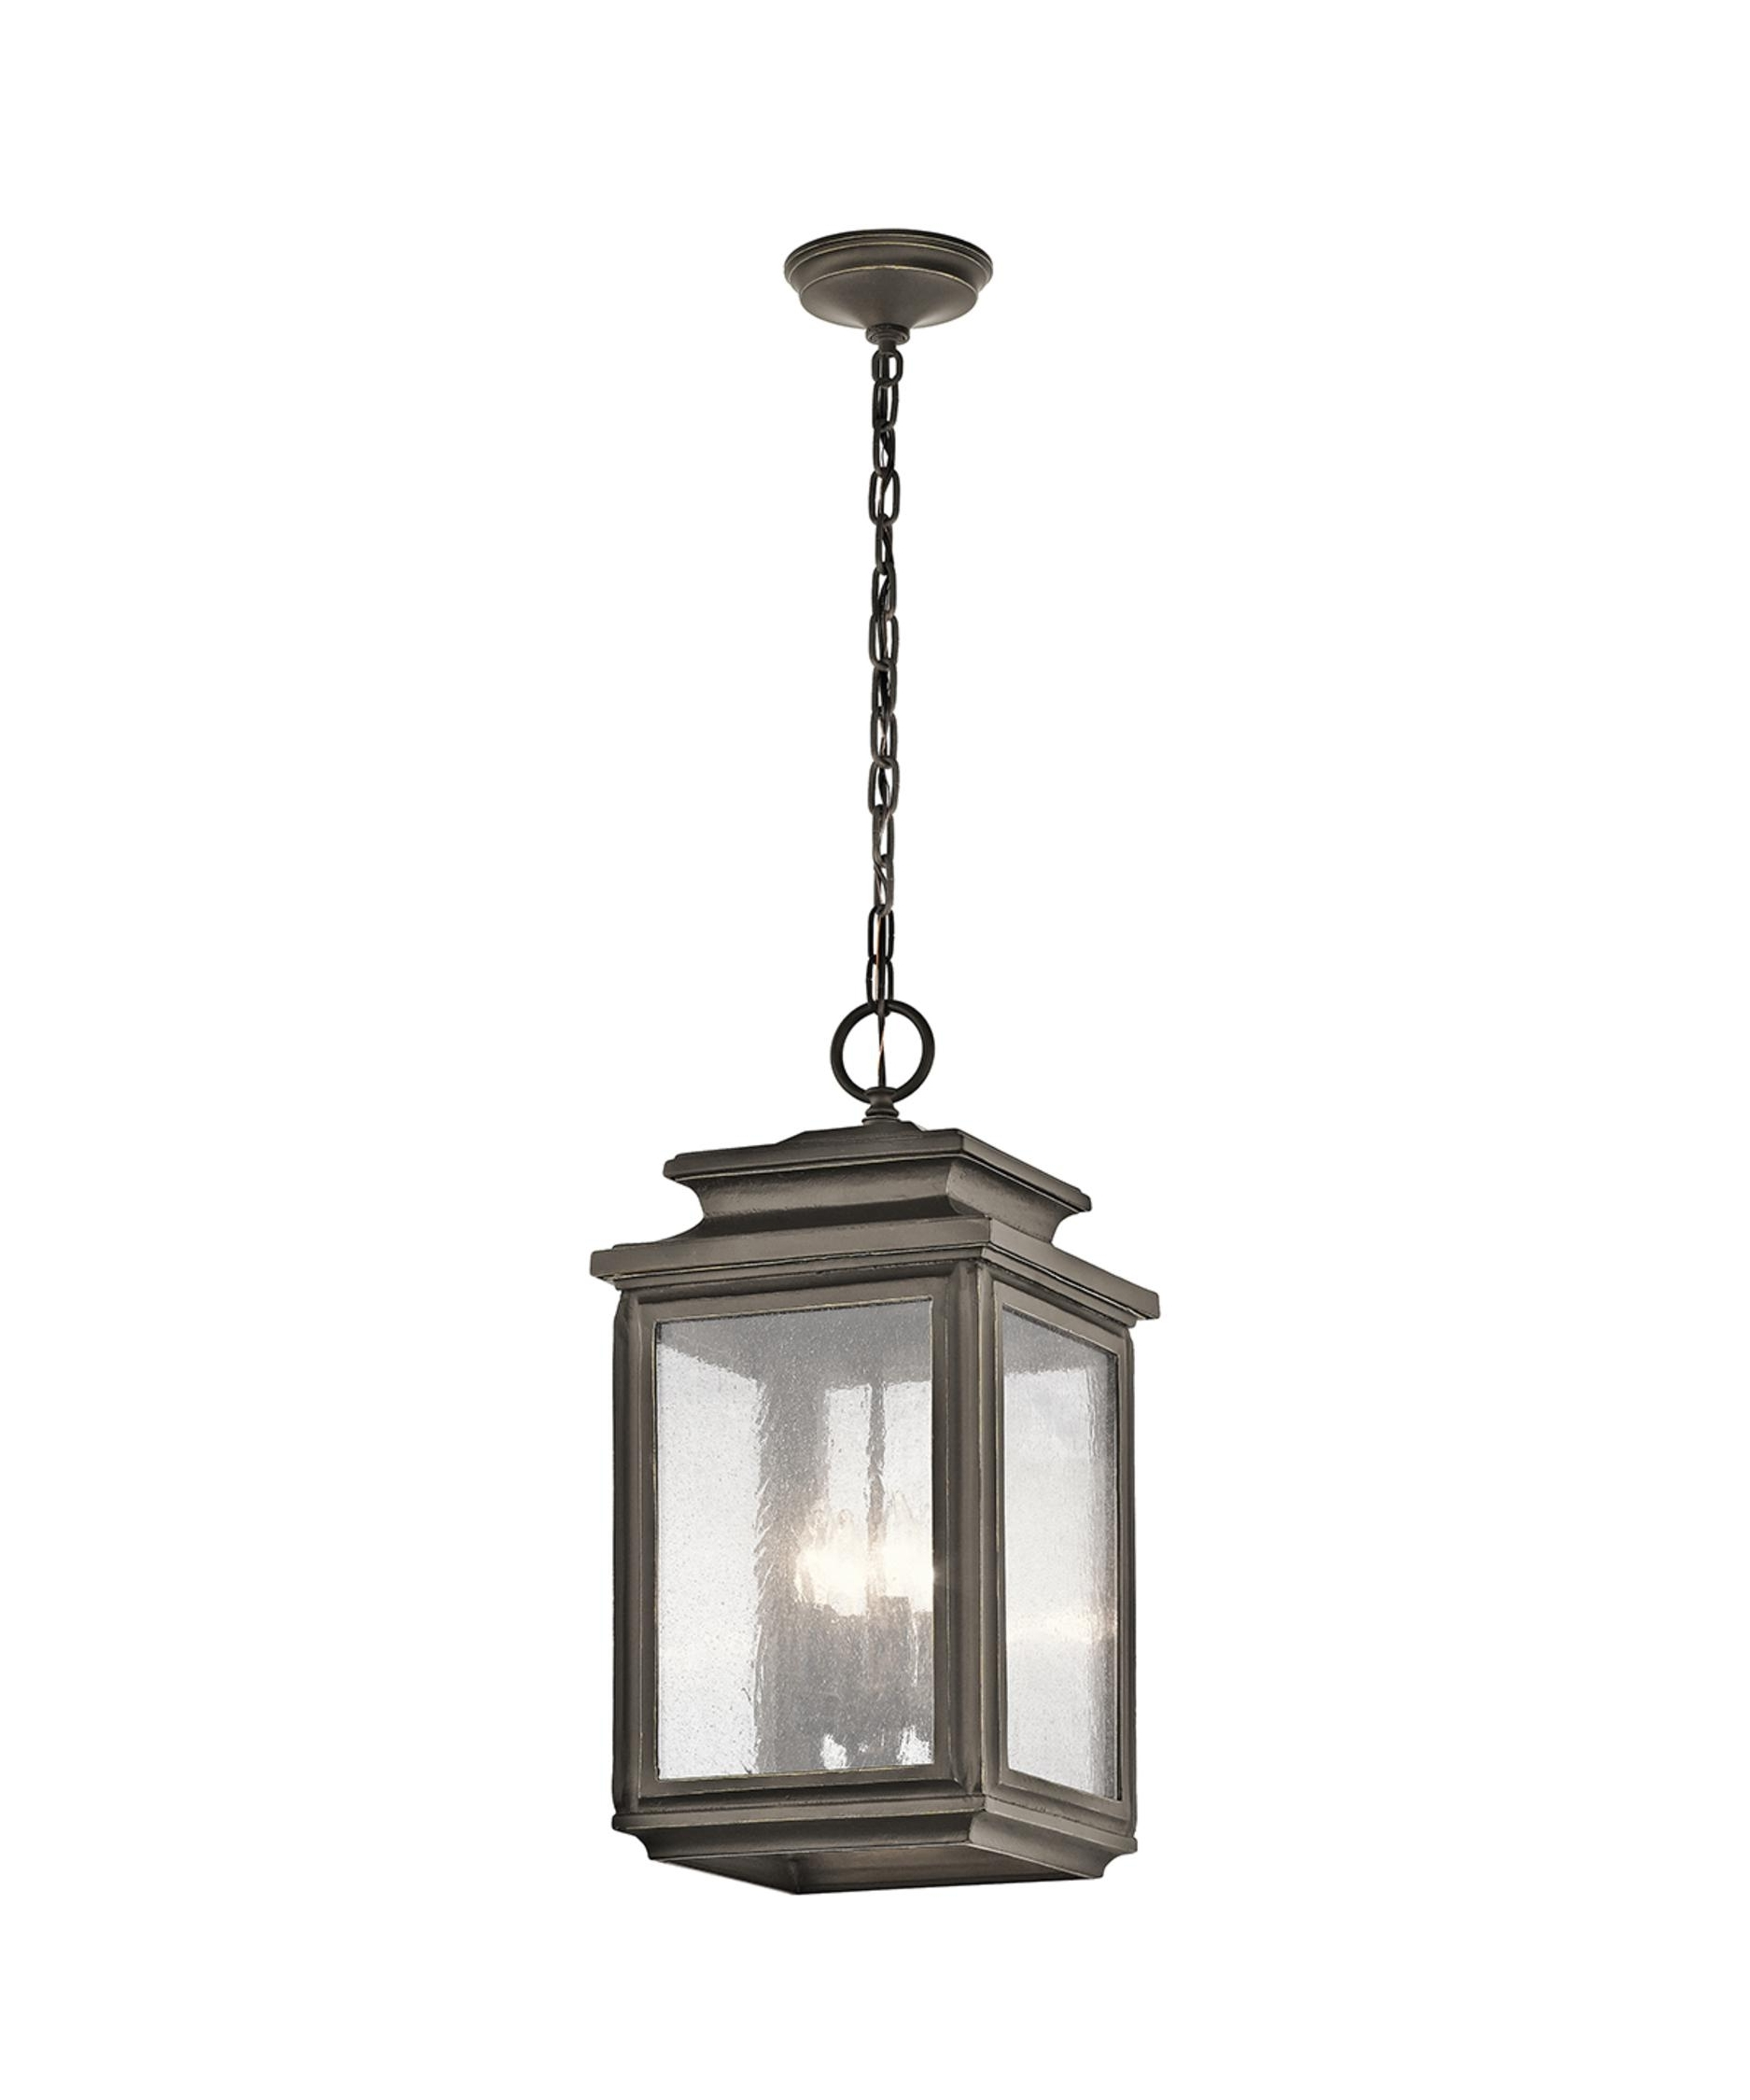 Fashionable Kichler Outdoor Lanterns Pertaining To Kichler 49505 Wiscombe Park 11 Inch Wide 4 Light Outdoor Hanging (View 15 of 20)